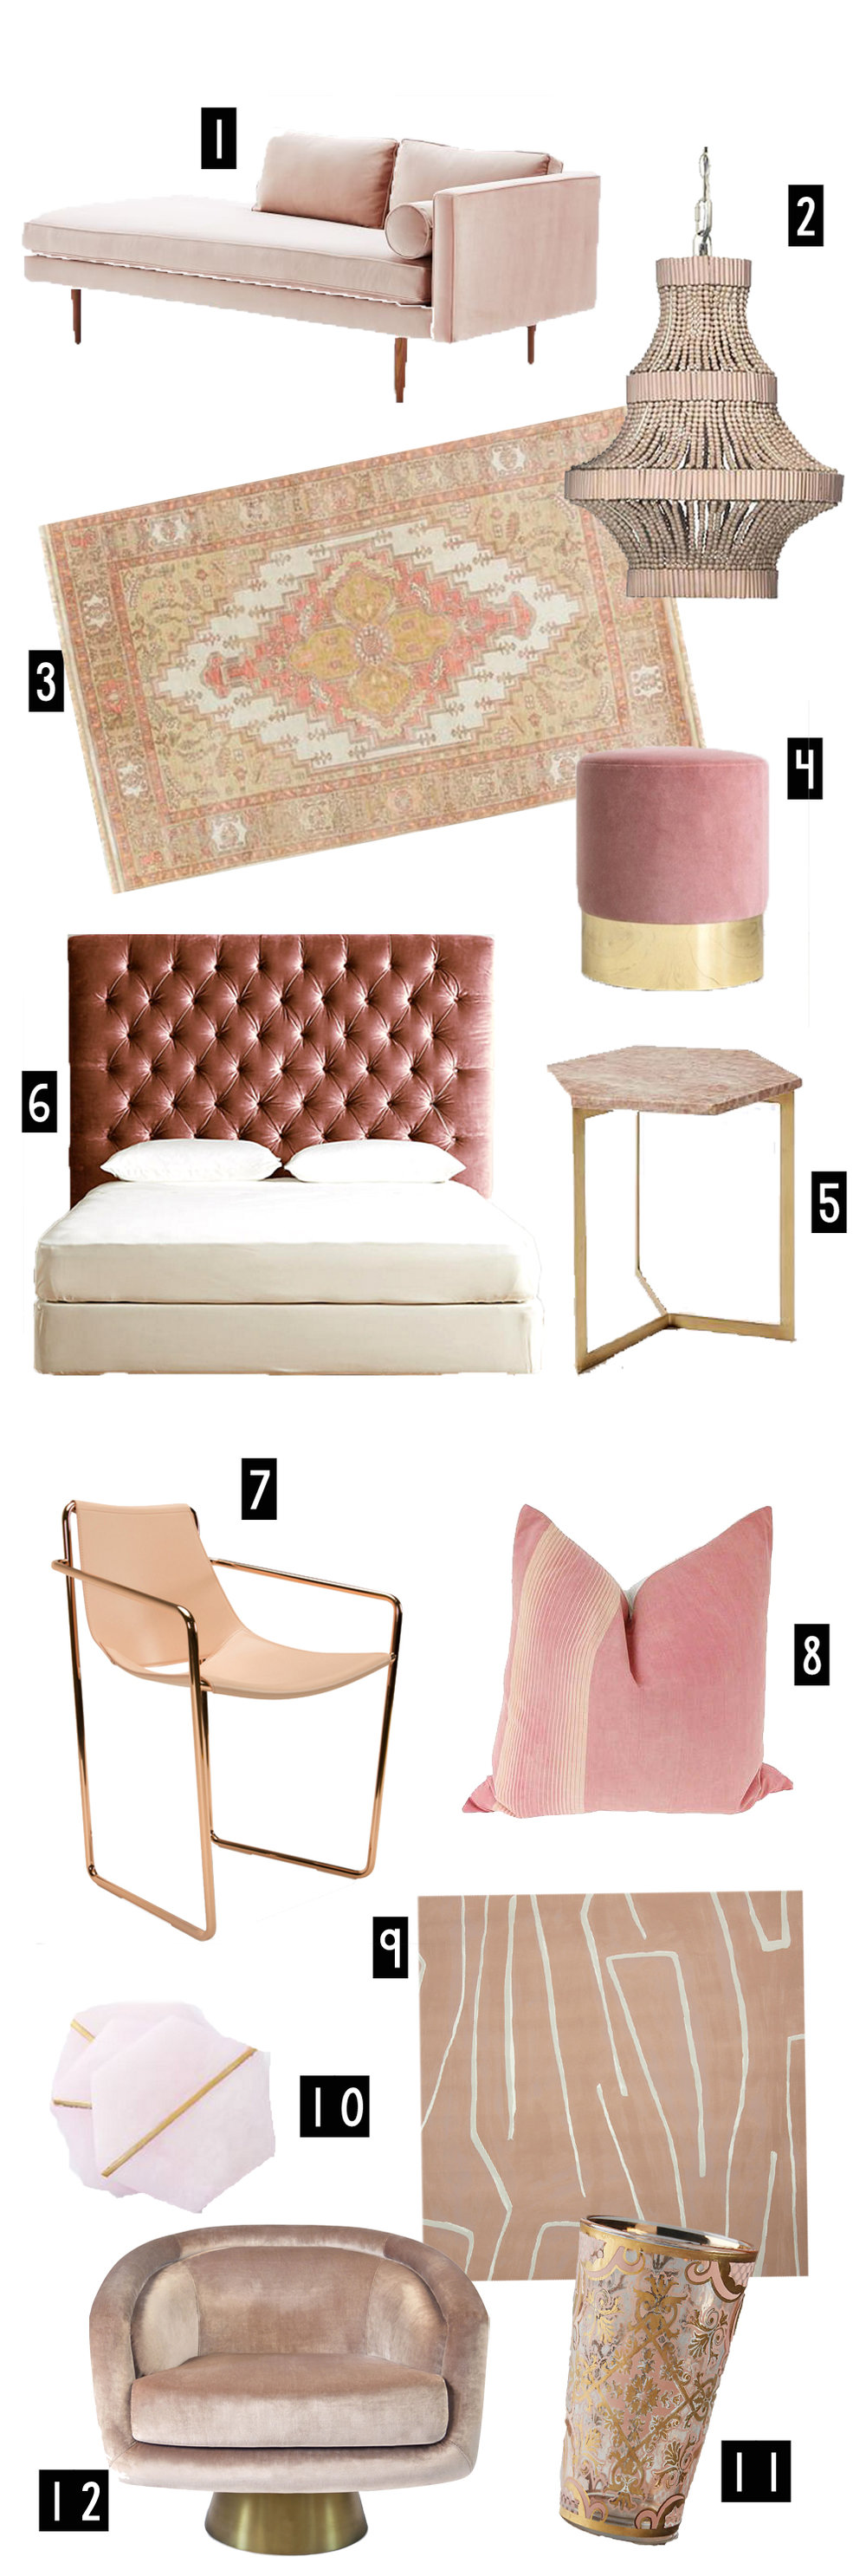 1. Monroe Mid Century Chaise  via West Elm  // 2. Whisper Chandelier  via One Kings Lane  // 3. Frona Rug in Rust  via One Kings Lane  // 4. Vintage Ottoman sold out online s imilar here (in rosewood)  // 5. Hex Side Table in Pink Marble  via West Elm  // 6. Velvet Headboard in Rosewood  via Anthropologie  // 7. Apple P Pink Armchai r via HD Buttercup  8. Vintage Pillow  via One Kings Lane  // 9. Kelly Wearstler  Graffito Wallpaper  // 10. Decked Out Pink Stone Coasters v ia West Elm  // 11. Highball Glass  via Anthropologie  // 12. Bacharach Swivel Chair  via Jonathan Adler